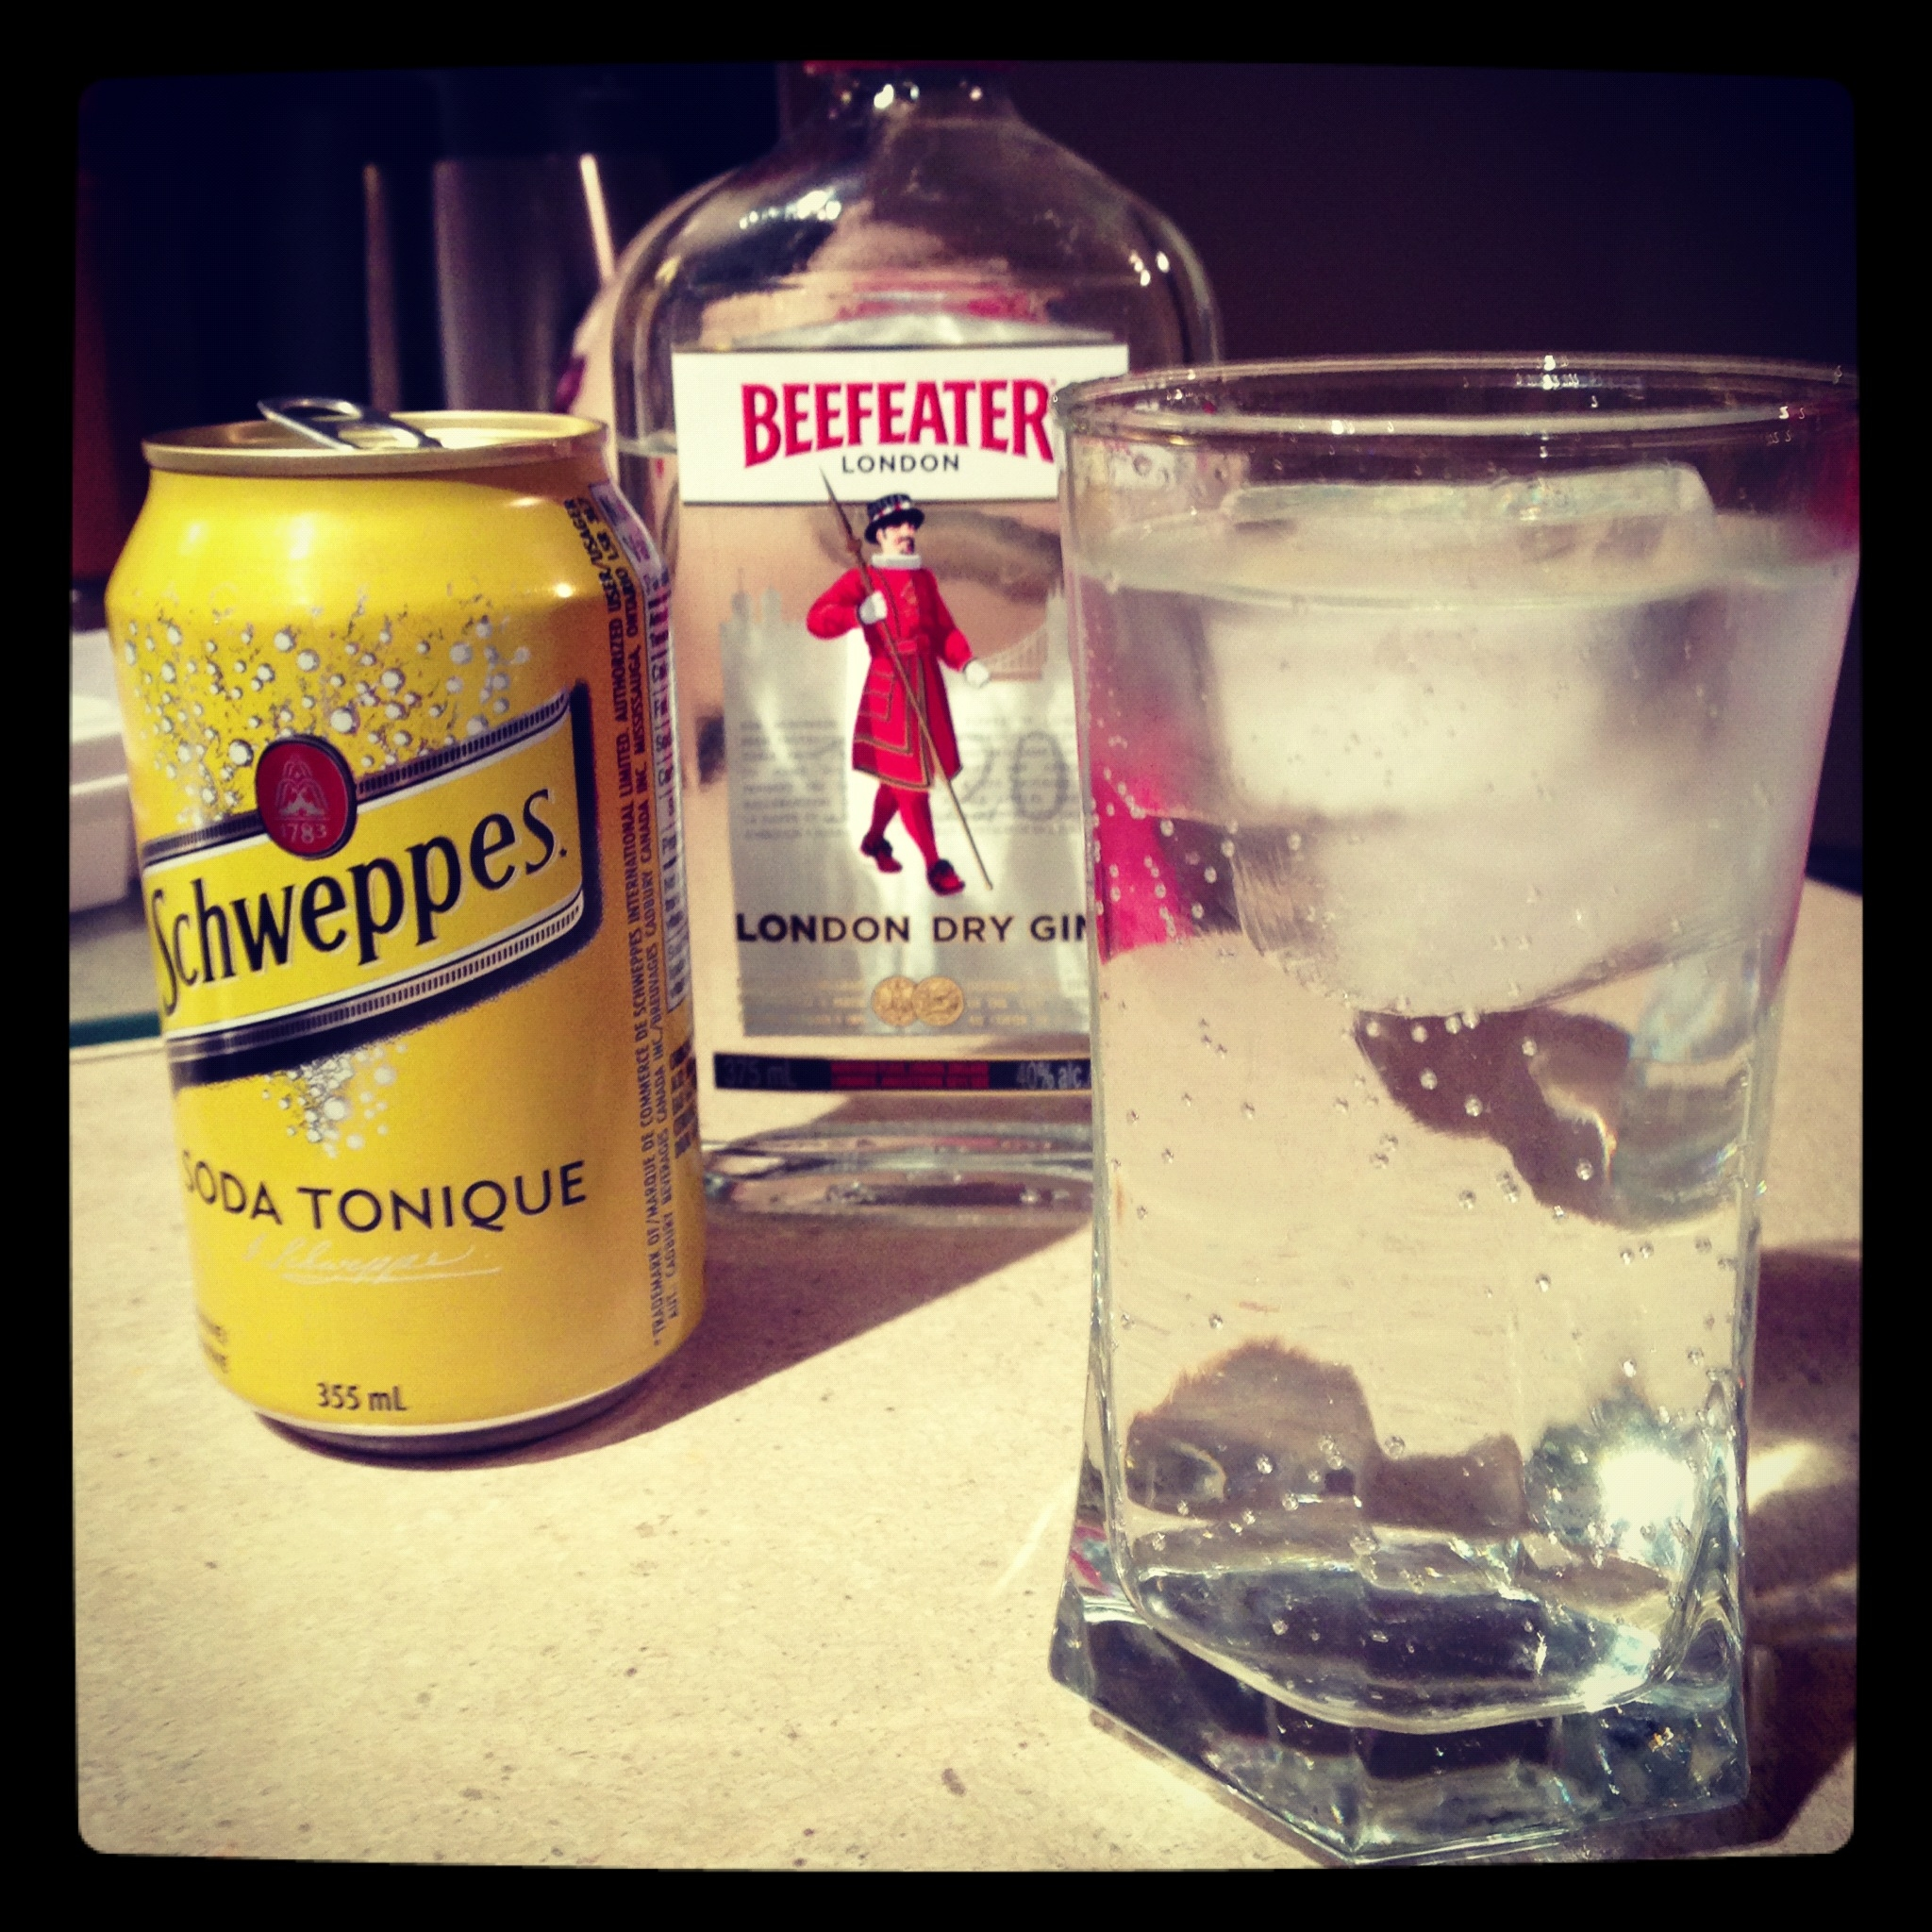 Beefeater + Tonic